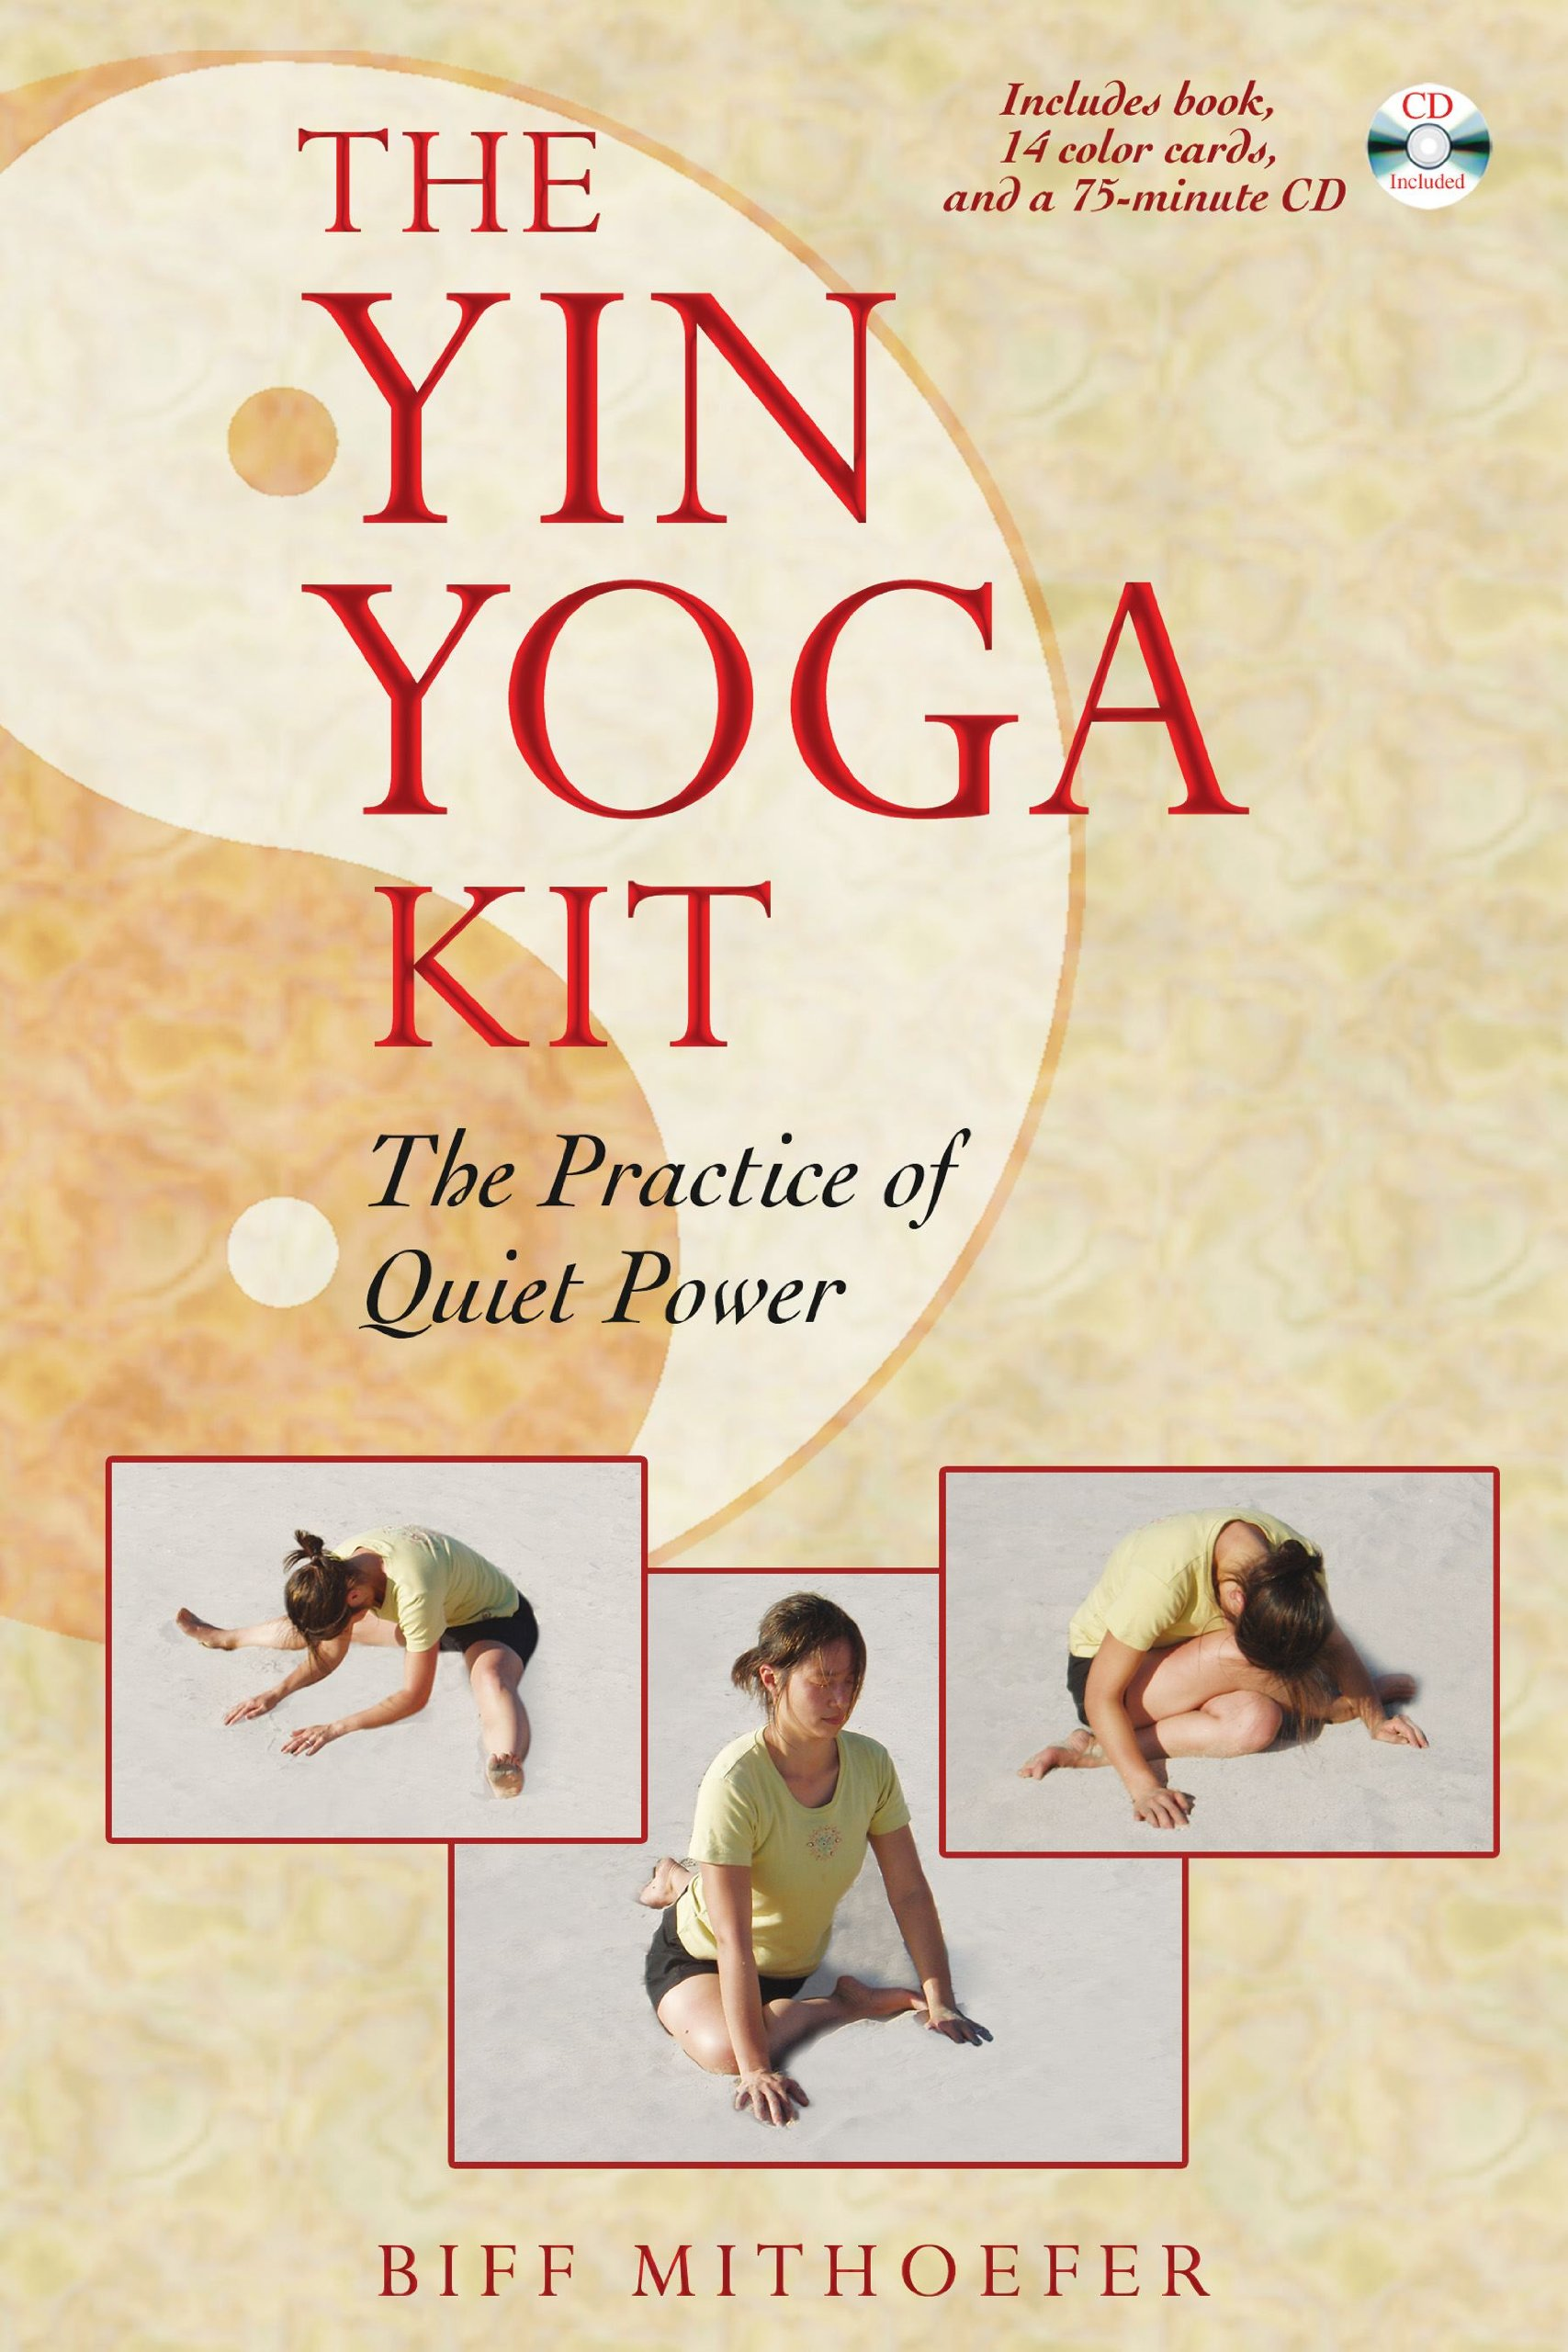 The Complete Guide to Yin Yoga, Bernie Clark Sarah Powers ...